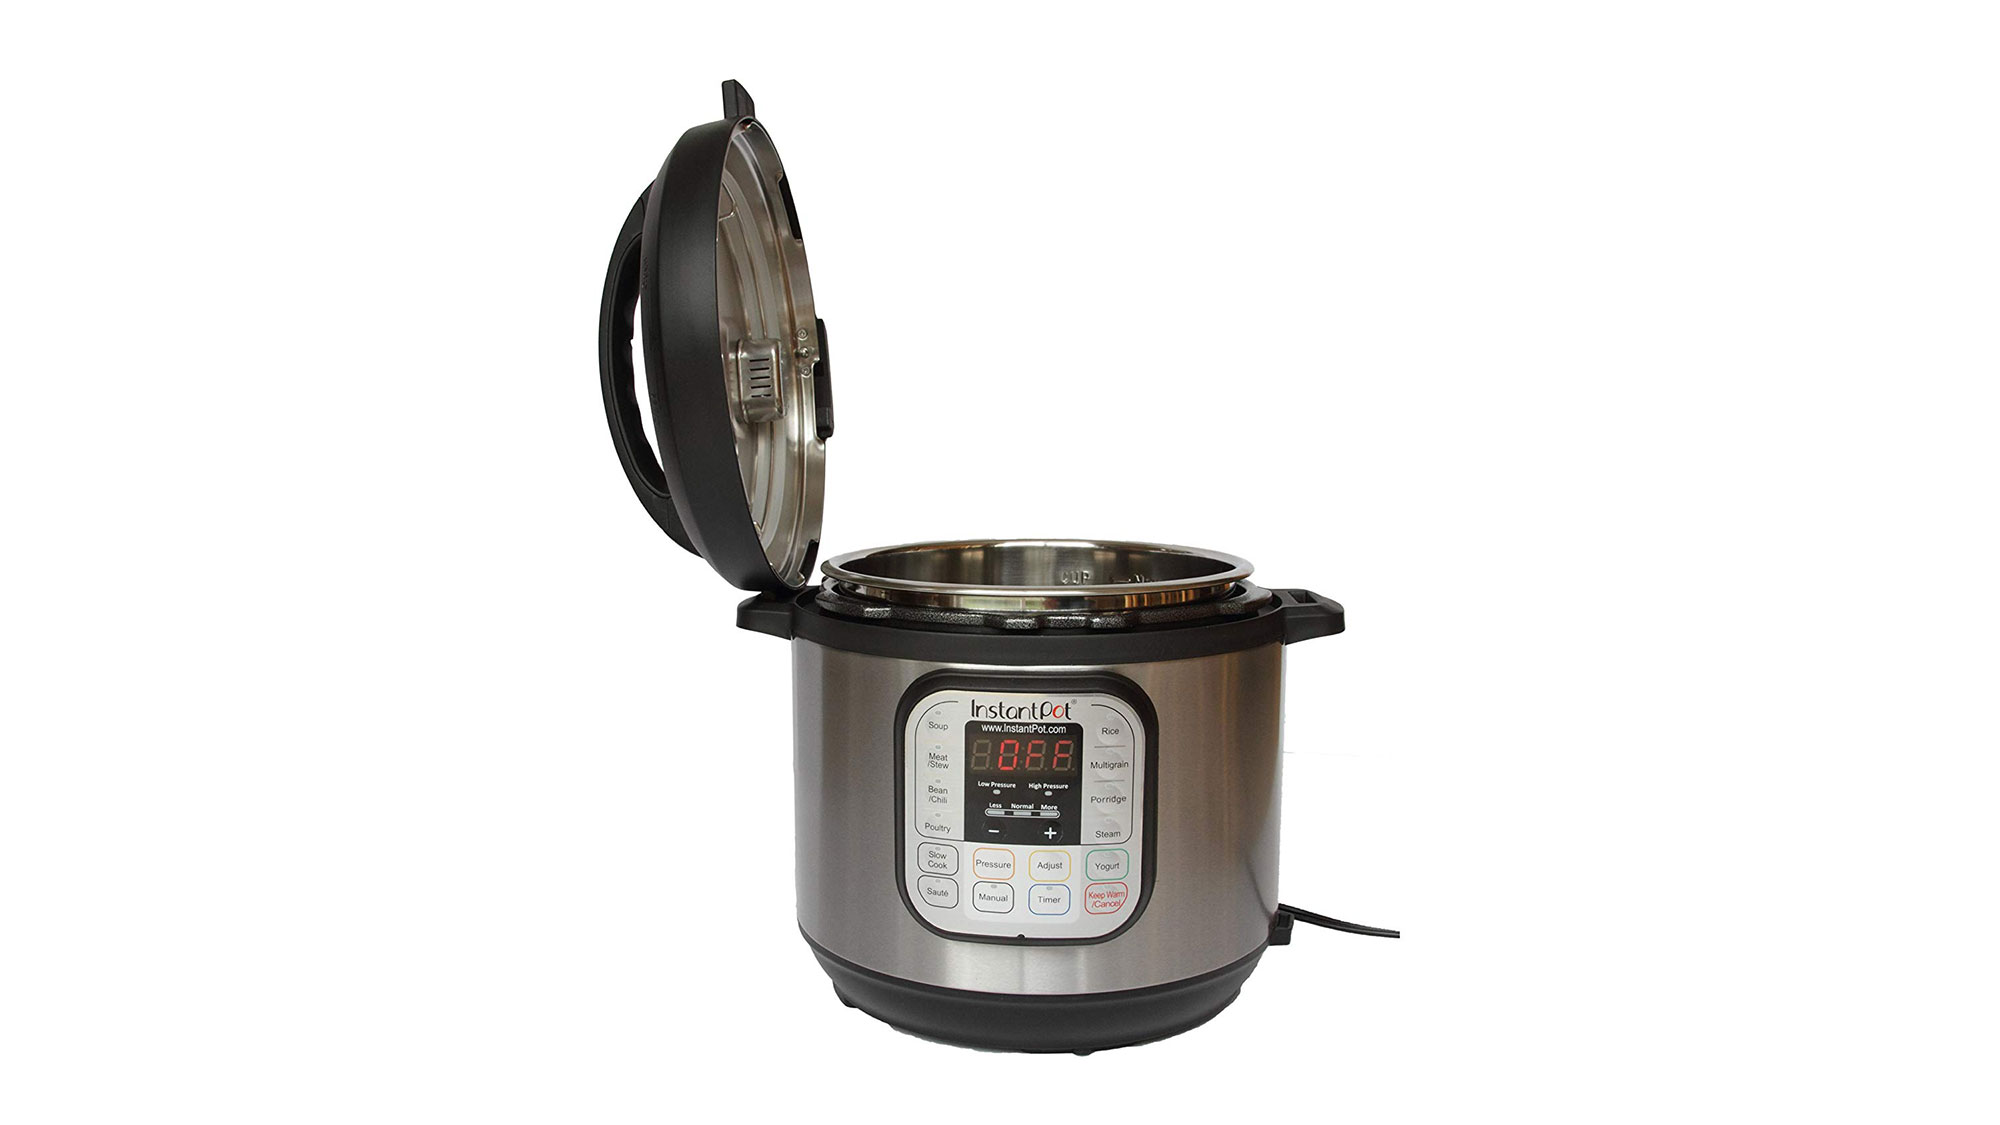 Instant Pot Duo 6-Quart Pressure Cooker